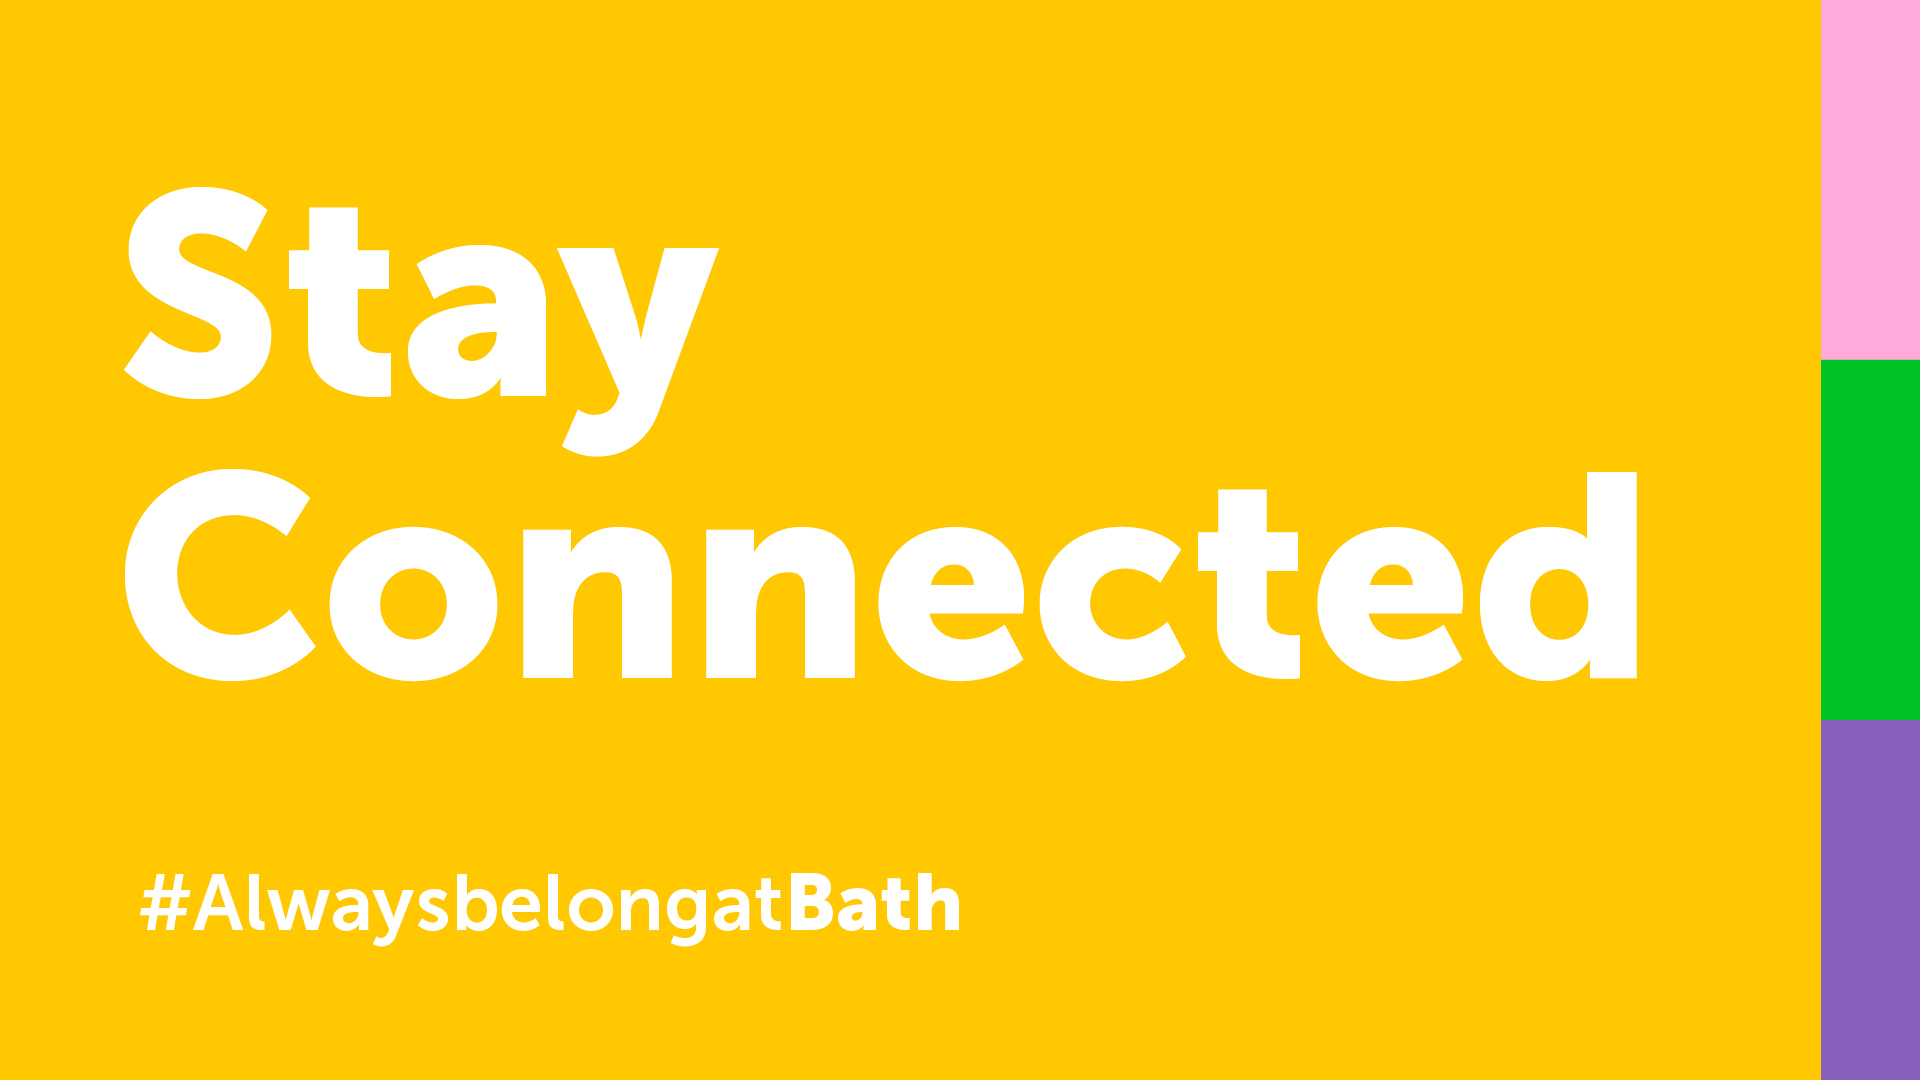 Stay Connected logo - 'Stay Connected' and '#AlwaysbelongatBath' in bold white text against a bright yellow background